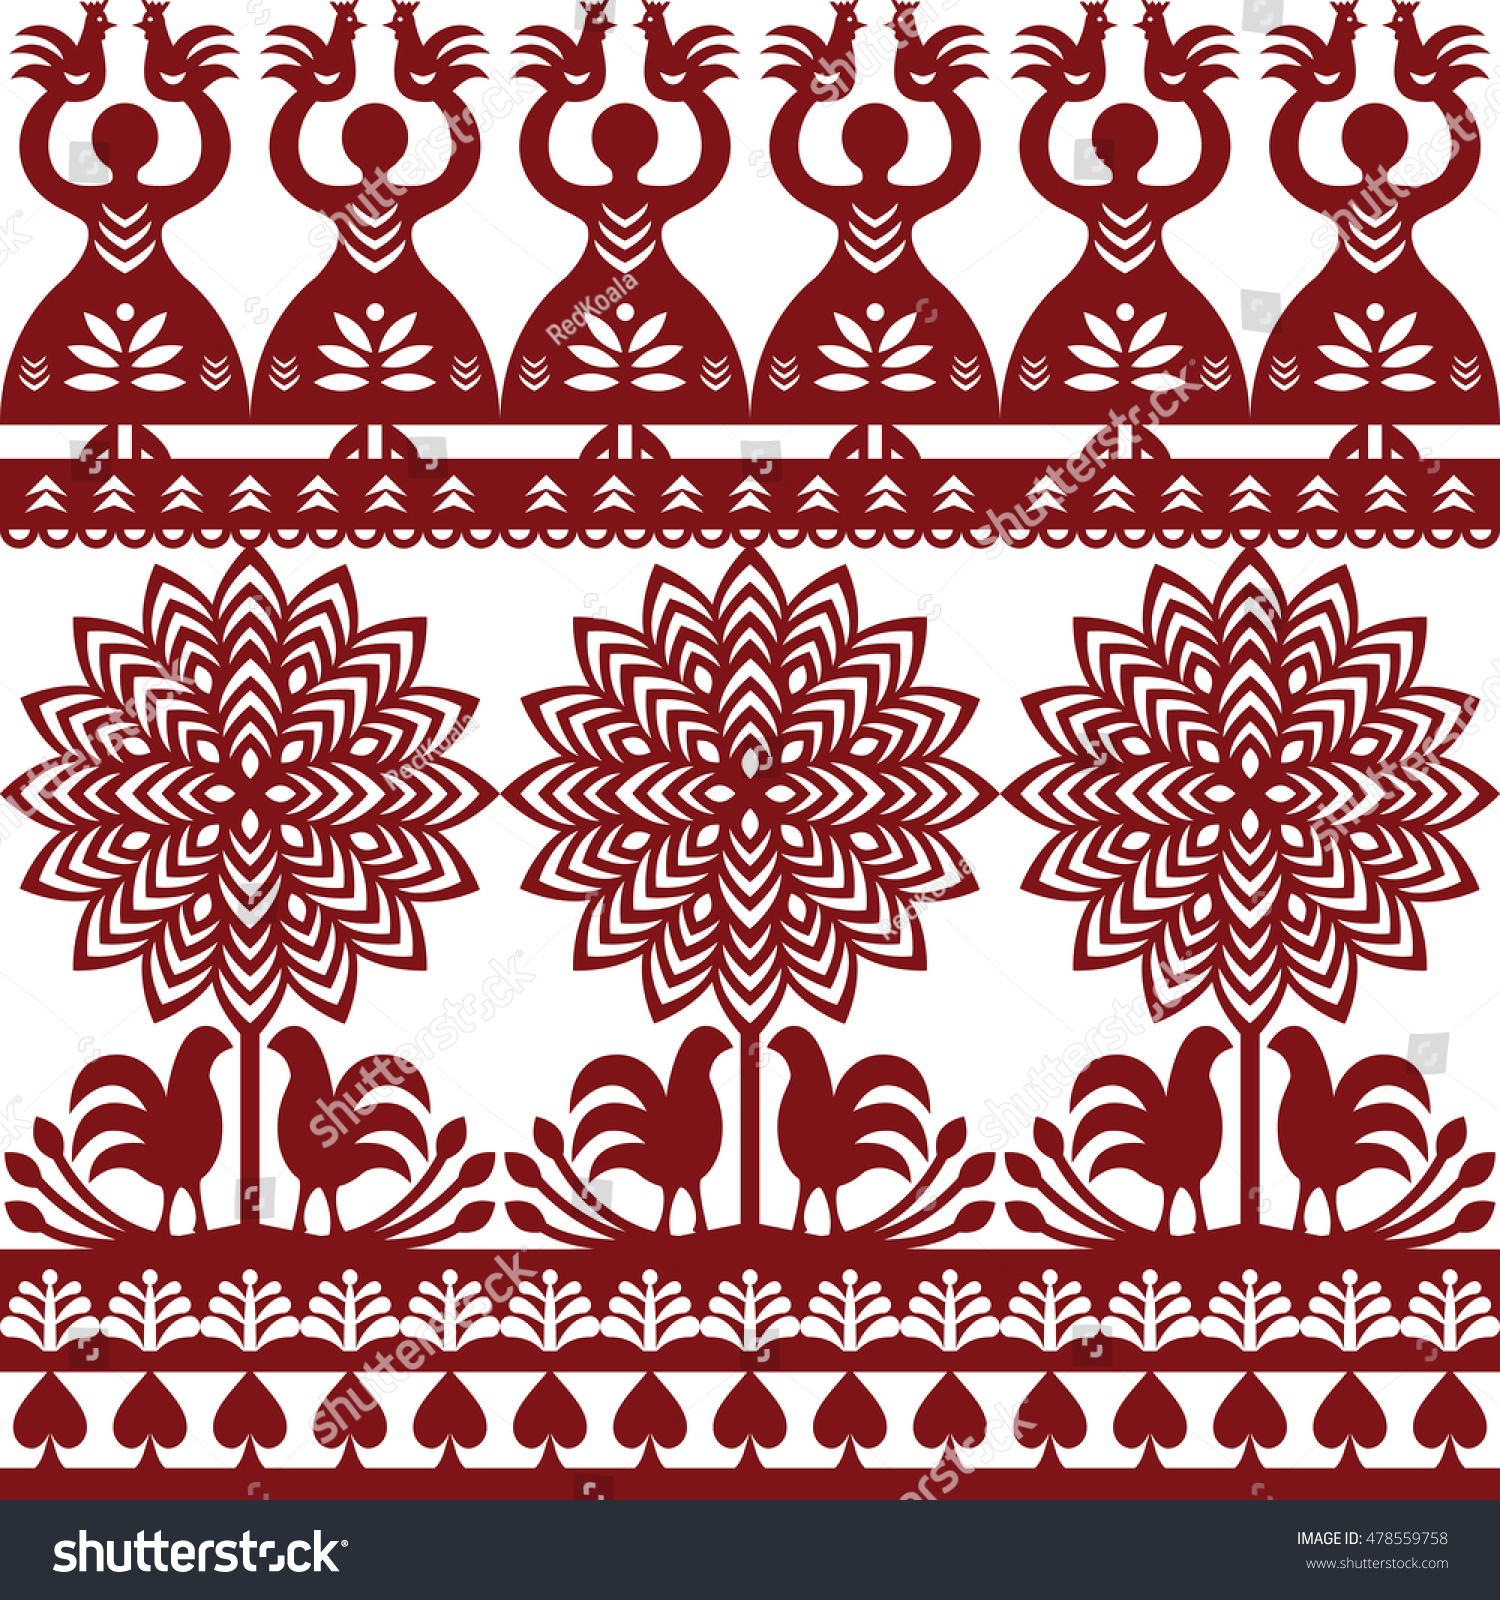 Seamless Polish Folk Art Pattern Wycinanki Stock Vector Royalty